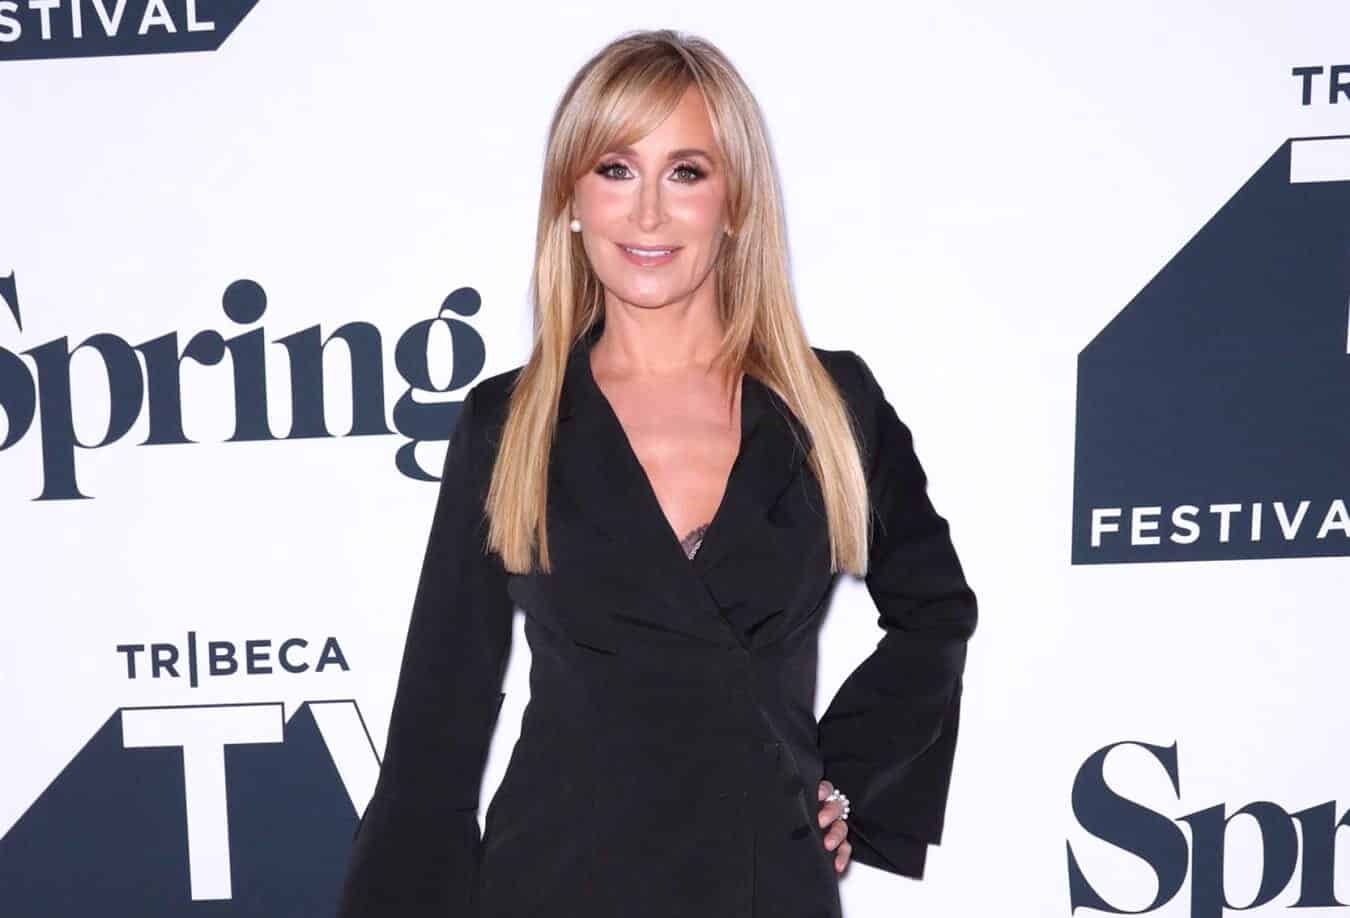 PHOTOS: Sonja Morgan's Clothing Line is Now Available at Walmart Following the Blow RHONY Star Took From Century 21 Closure, Get a Look at the Stylish Collection